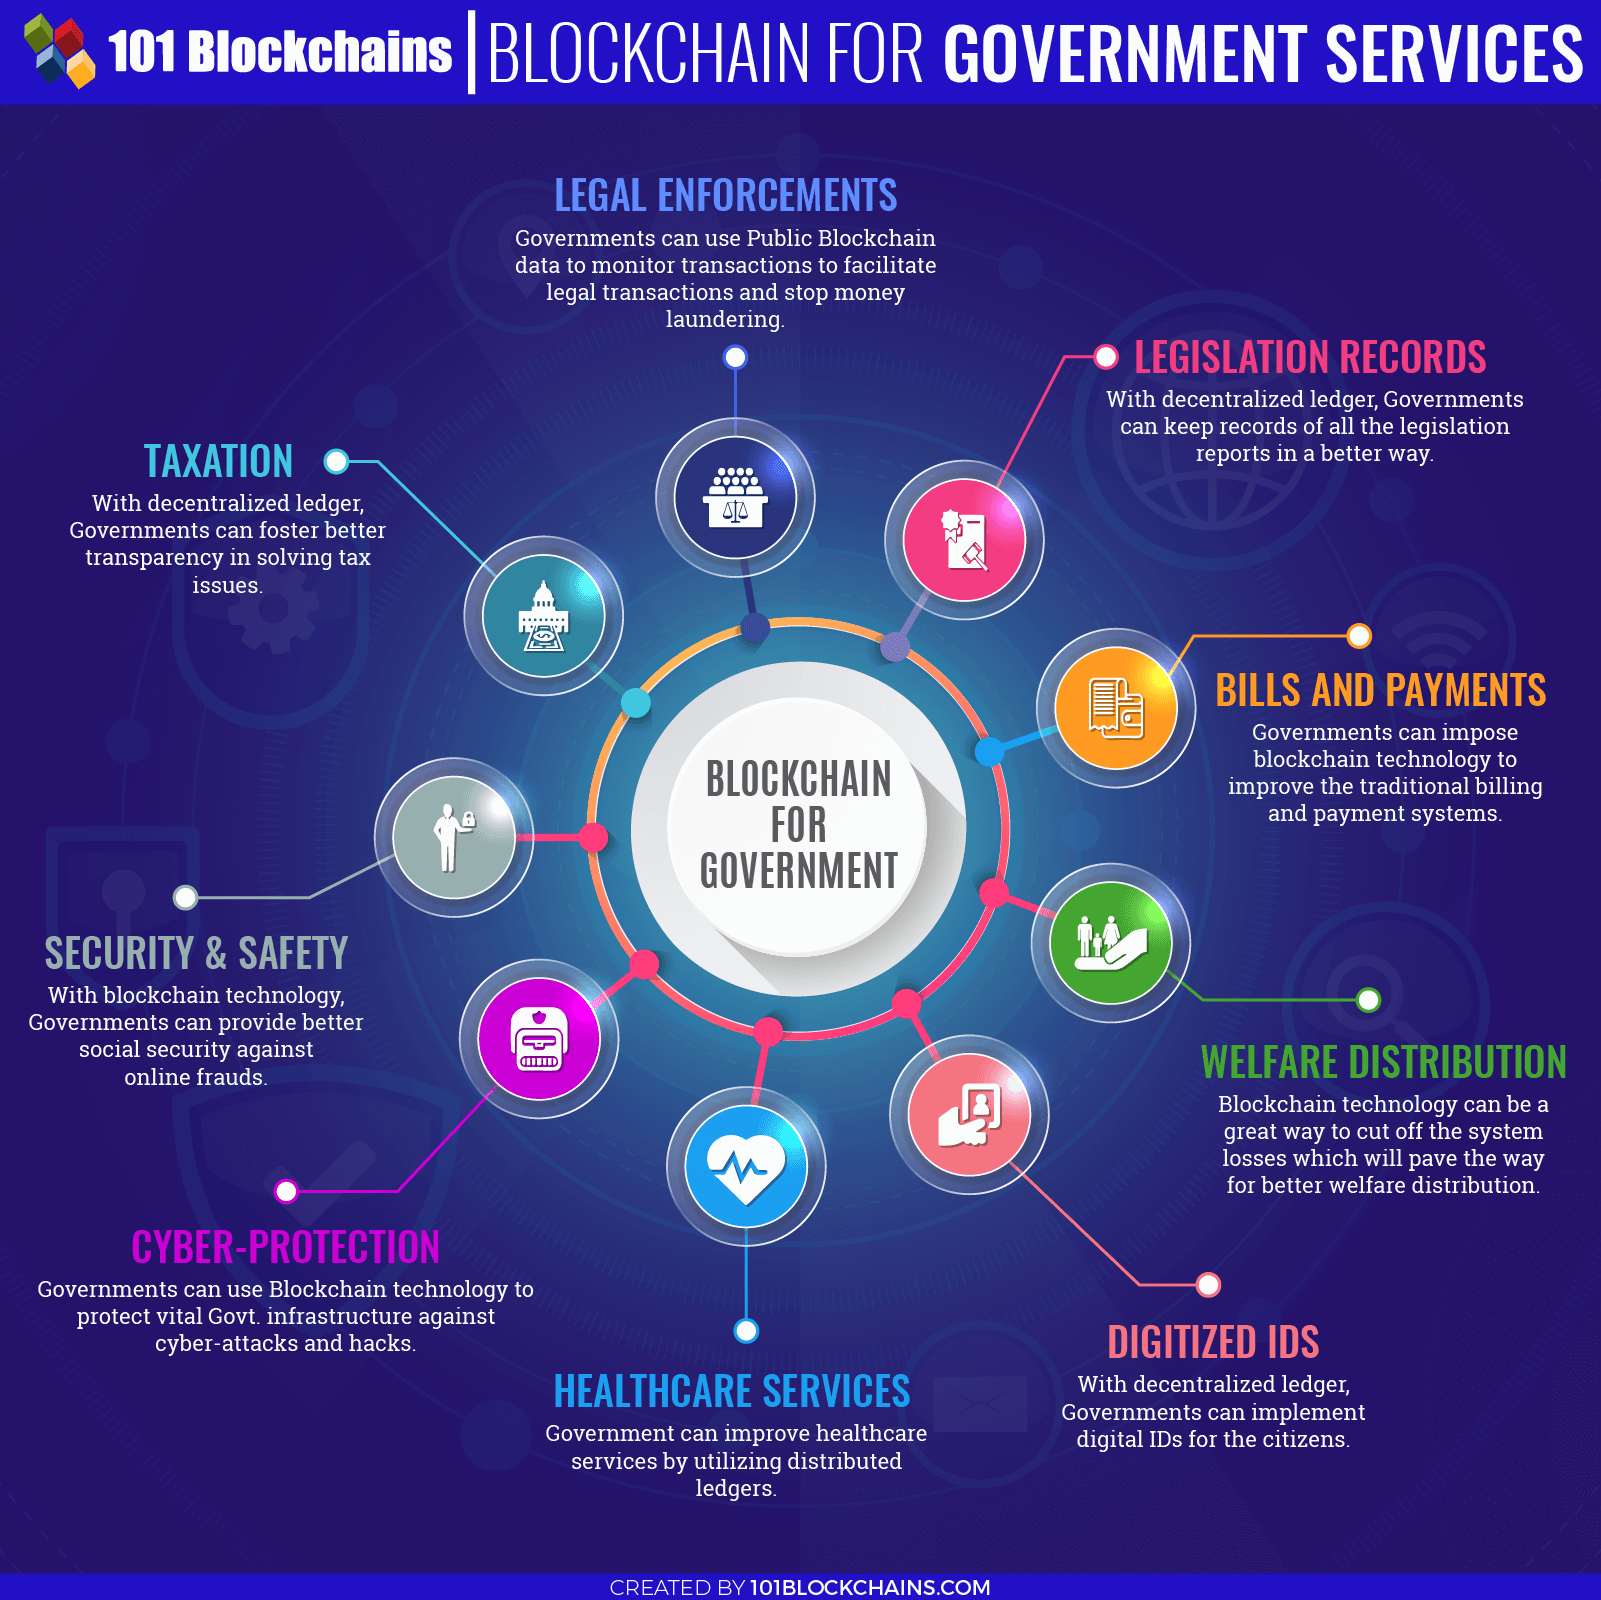 Blockchain for government services